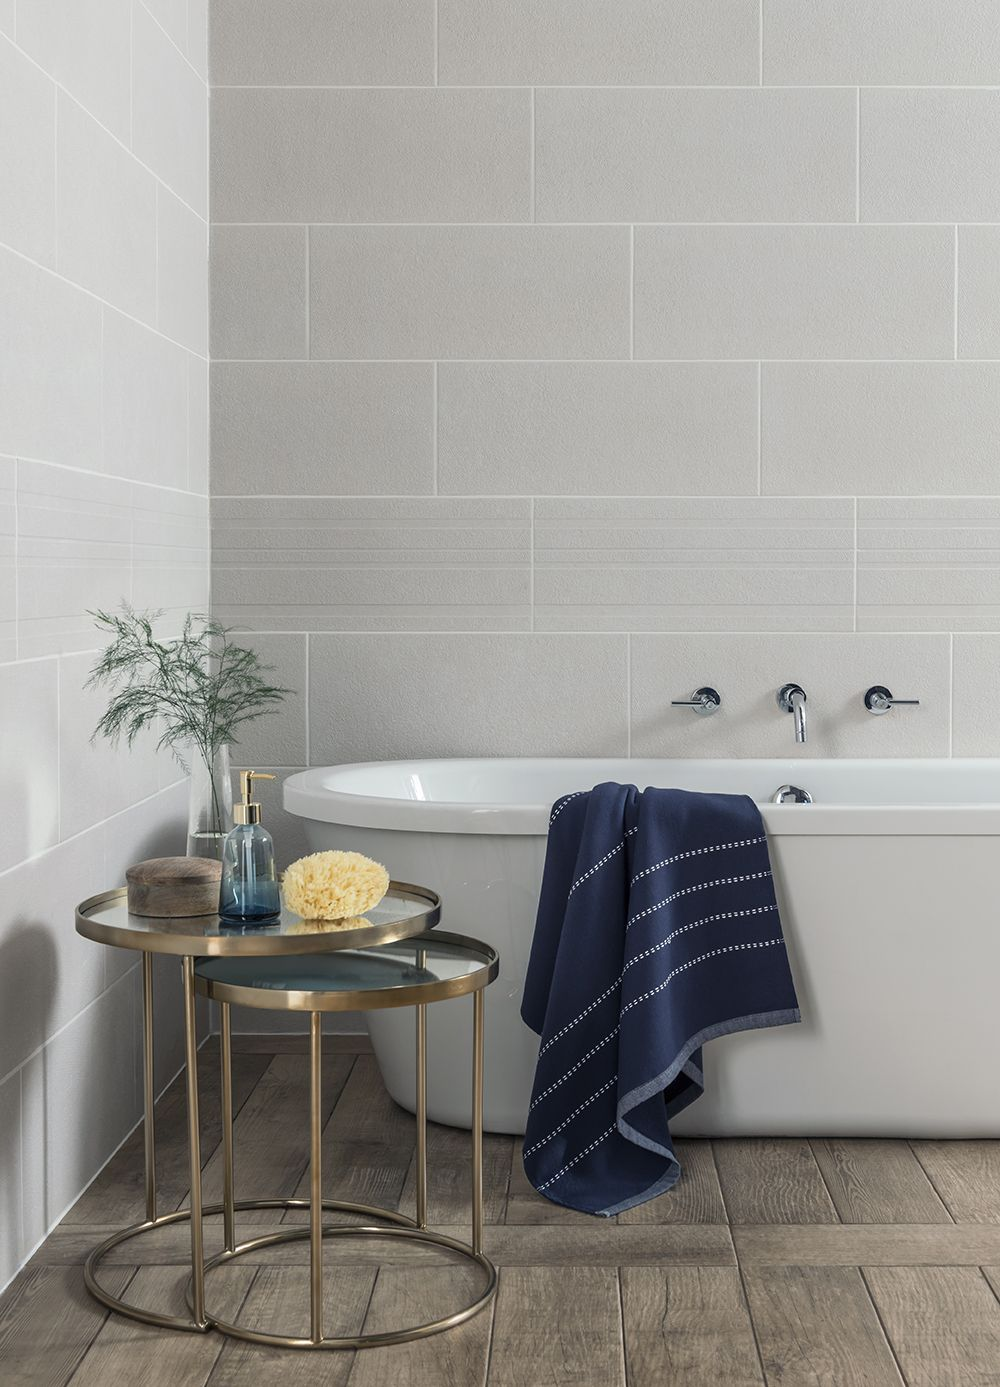 Callow By Topps Tiles A Handy Ask The Experts Blog Post From Topps Tiles In Association With Rock My Style Answe Bathroom Wall Tile Topps Tiles Tile Bathroom